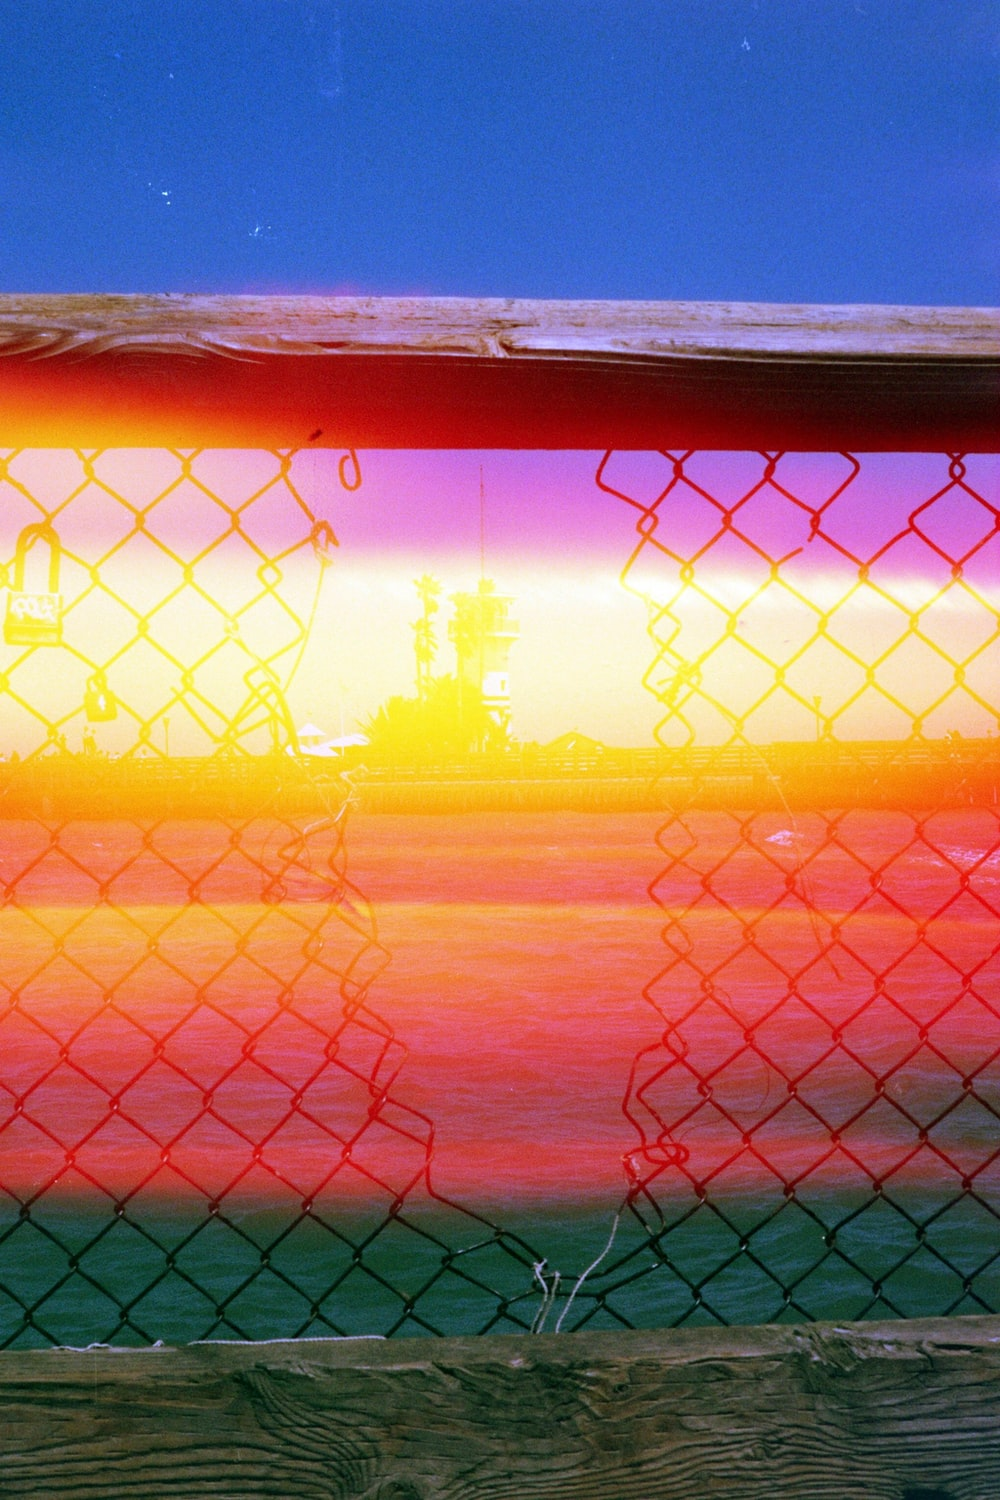 silhouette photo of mesh fence